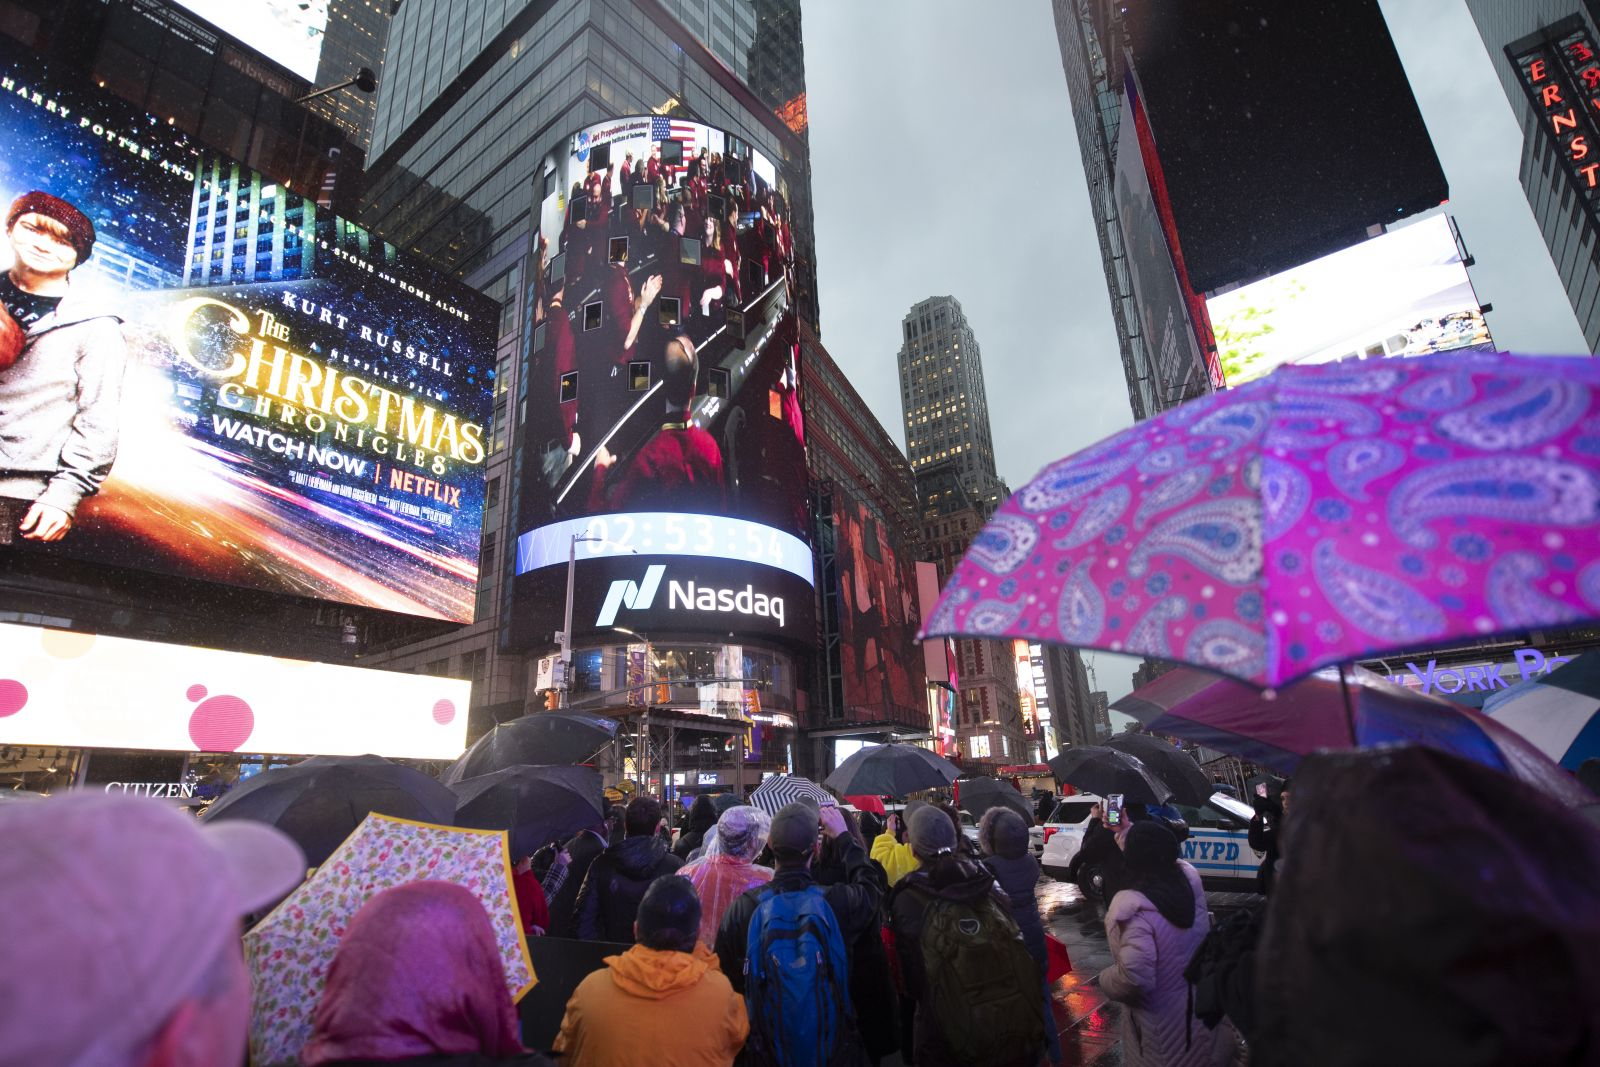 Spectators in Times Square watch the video board of the Nasdaq MarketSite showing the live NASA TV broadcast as NASA InSight team members celebrate inside the Mission Support Area of NASA's Jet Propulsion Laboratory after receiving confirmation the lander successfully touched down on the surface of Mars, Monday, Nov. 26, 2018 in Times Square in New York City. Photo & Caption Credit: Joel Kowsky / SpaceFlight Insider